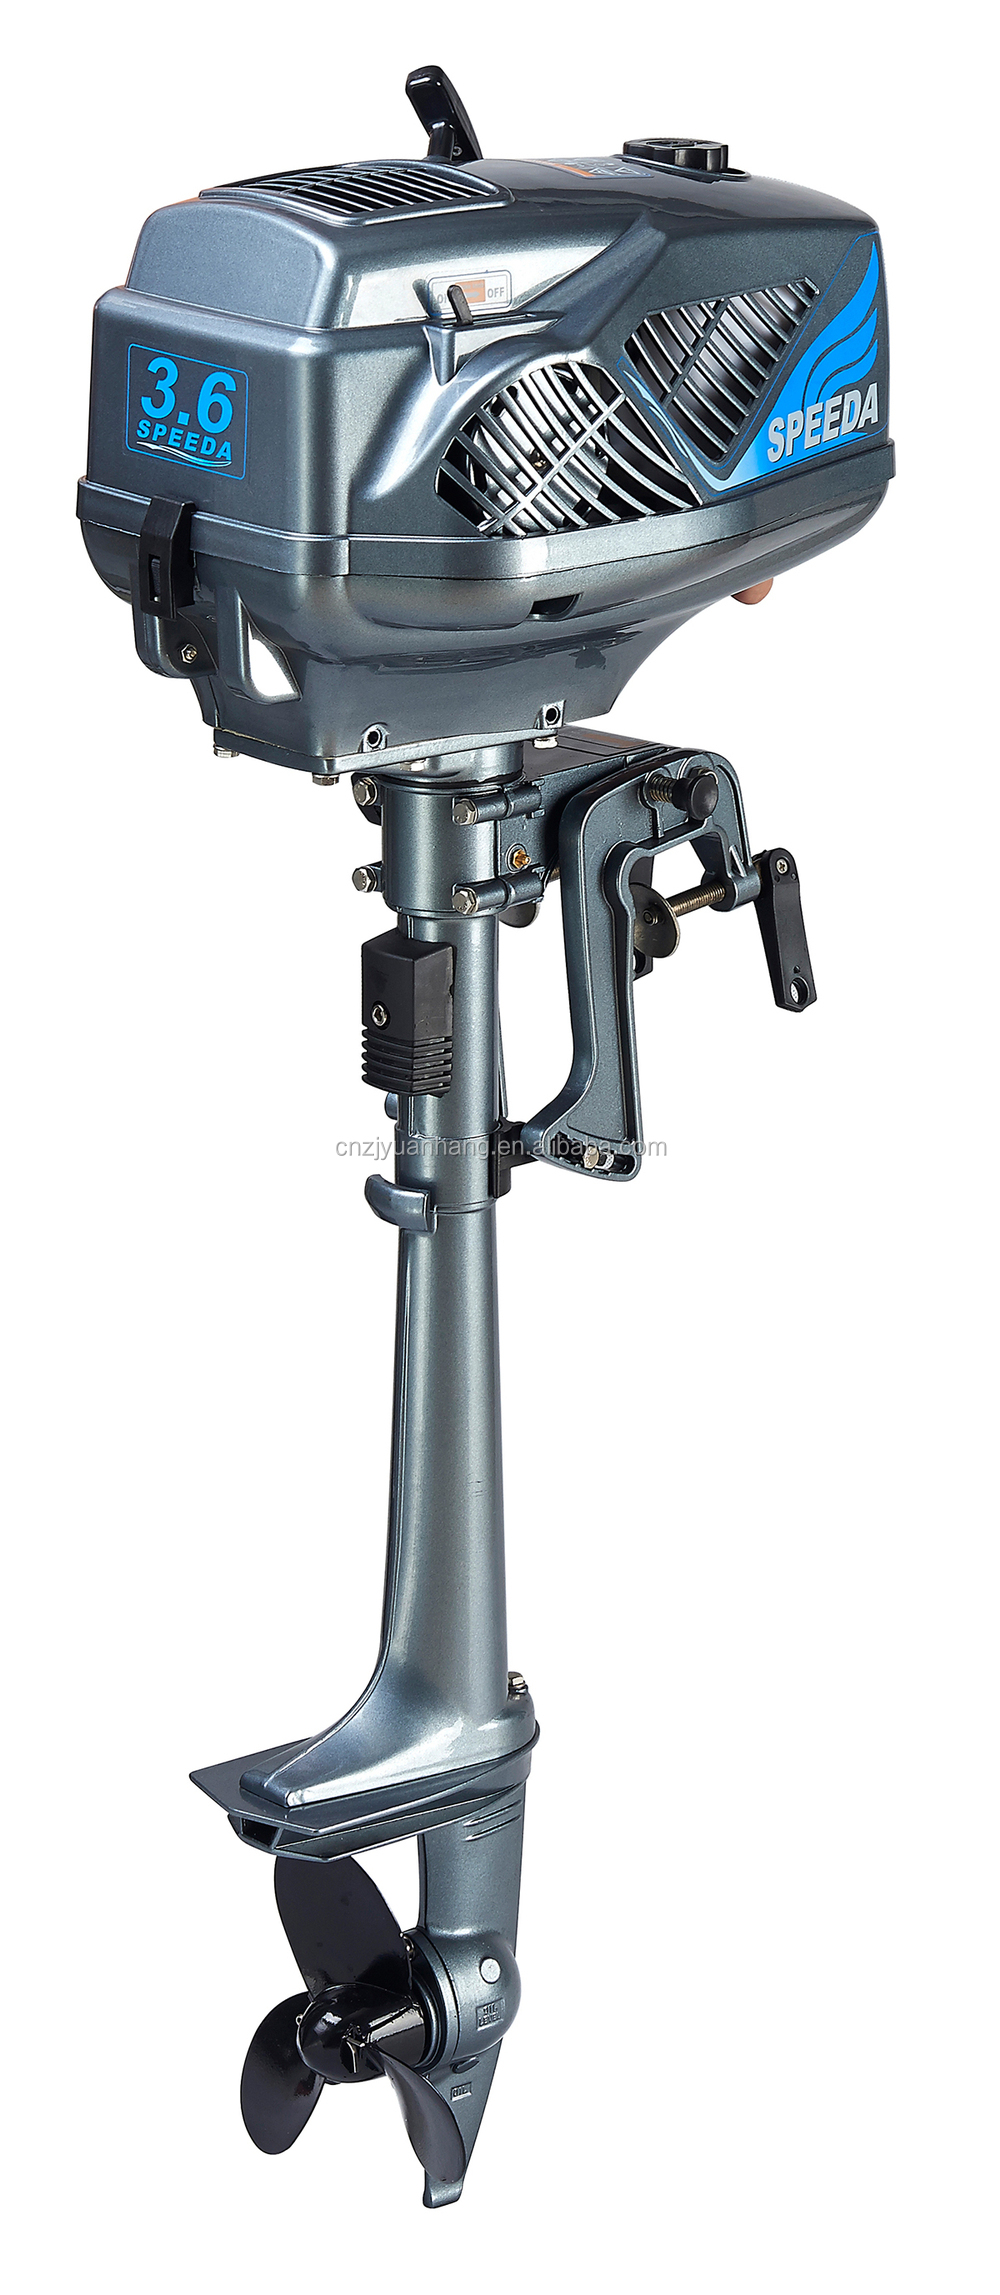 Yadao 2 Stroke Outboard Motors For Boats Sale Buy